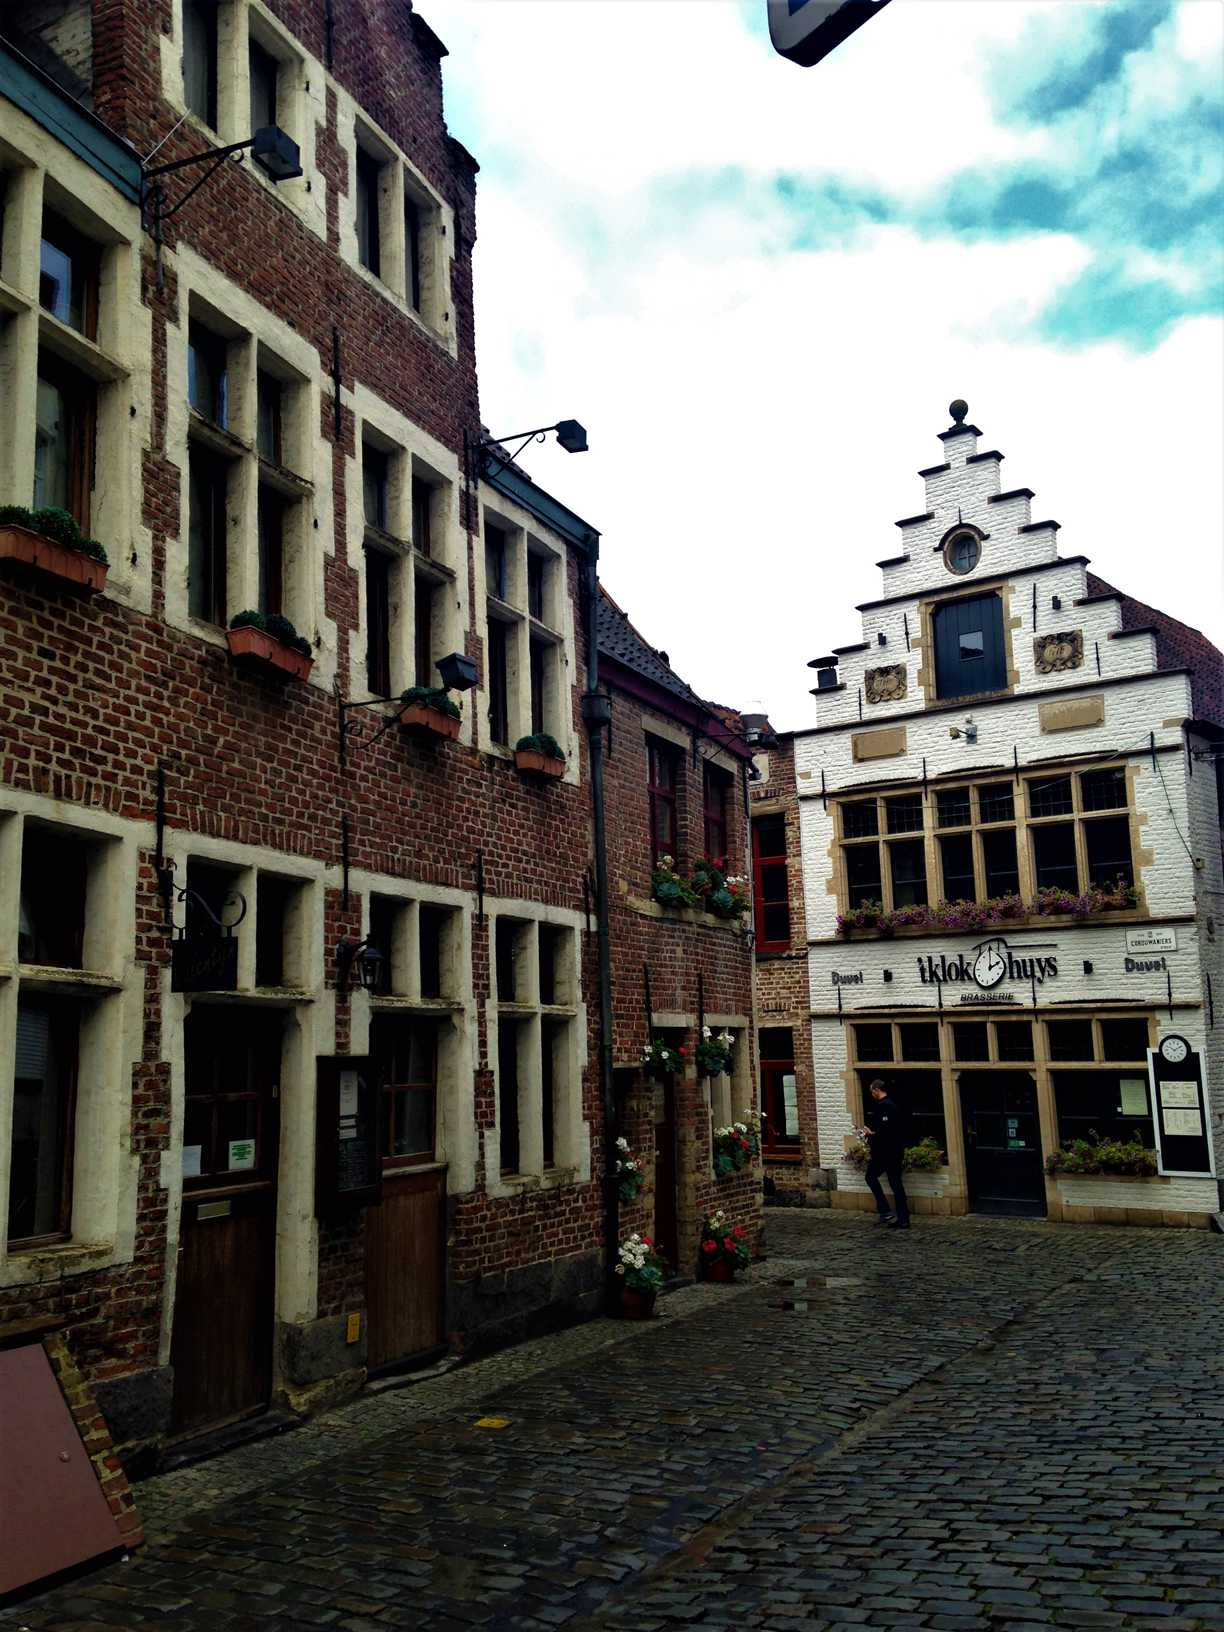 This picture shows a street in Ghent, Belgium with a brick building to the left and a white brick building with gables in the background.